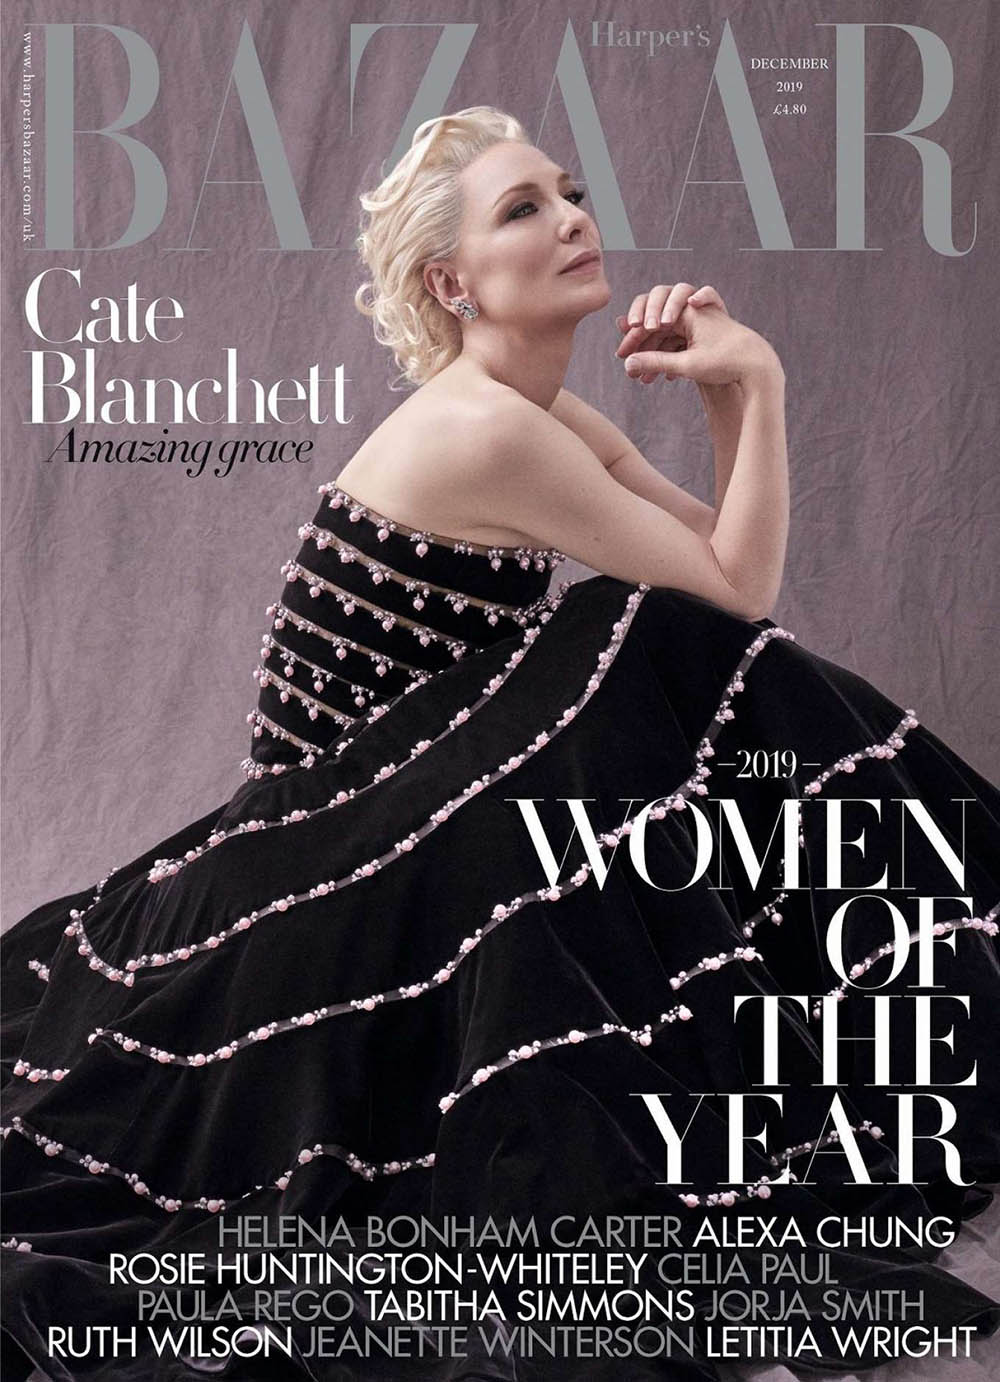 Cate Blanchett covers Harper's Bazaar UK December 2019 by Tom Munro